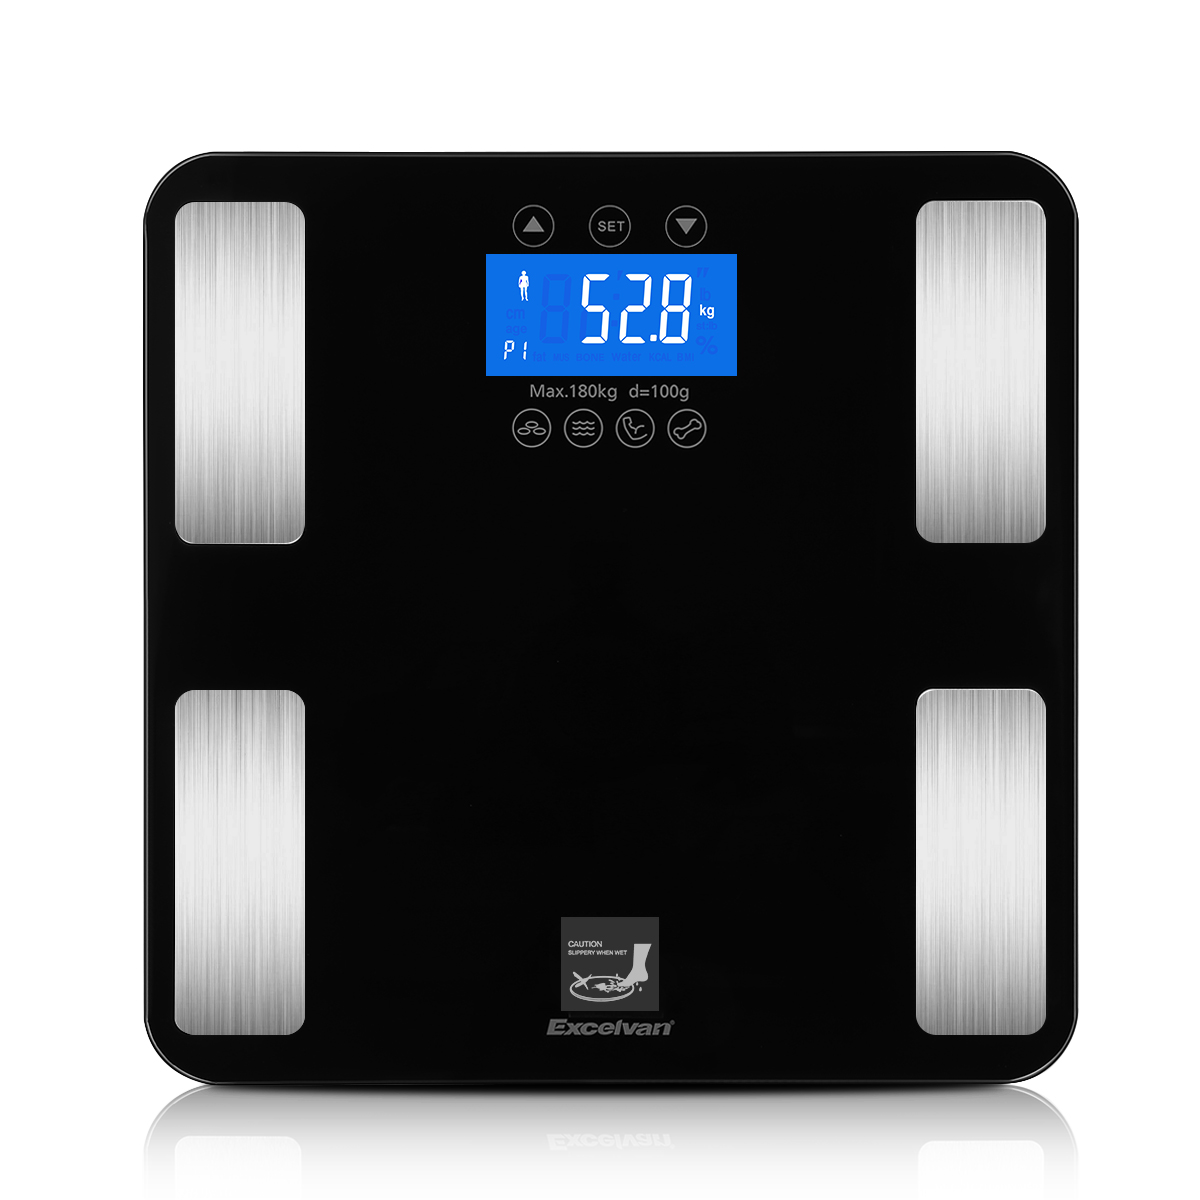 Bmi bathroom scales - Excelvan Touch 400 Lb Digital Body Fat Scale Body Weight Bmi Fat Water Calories Muscle Bone Mass Scale Walmart Com